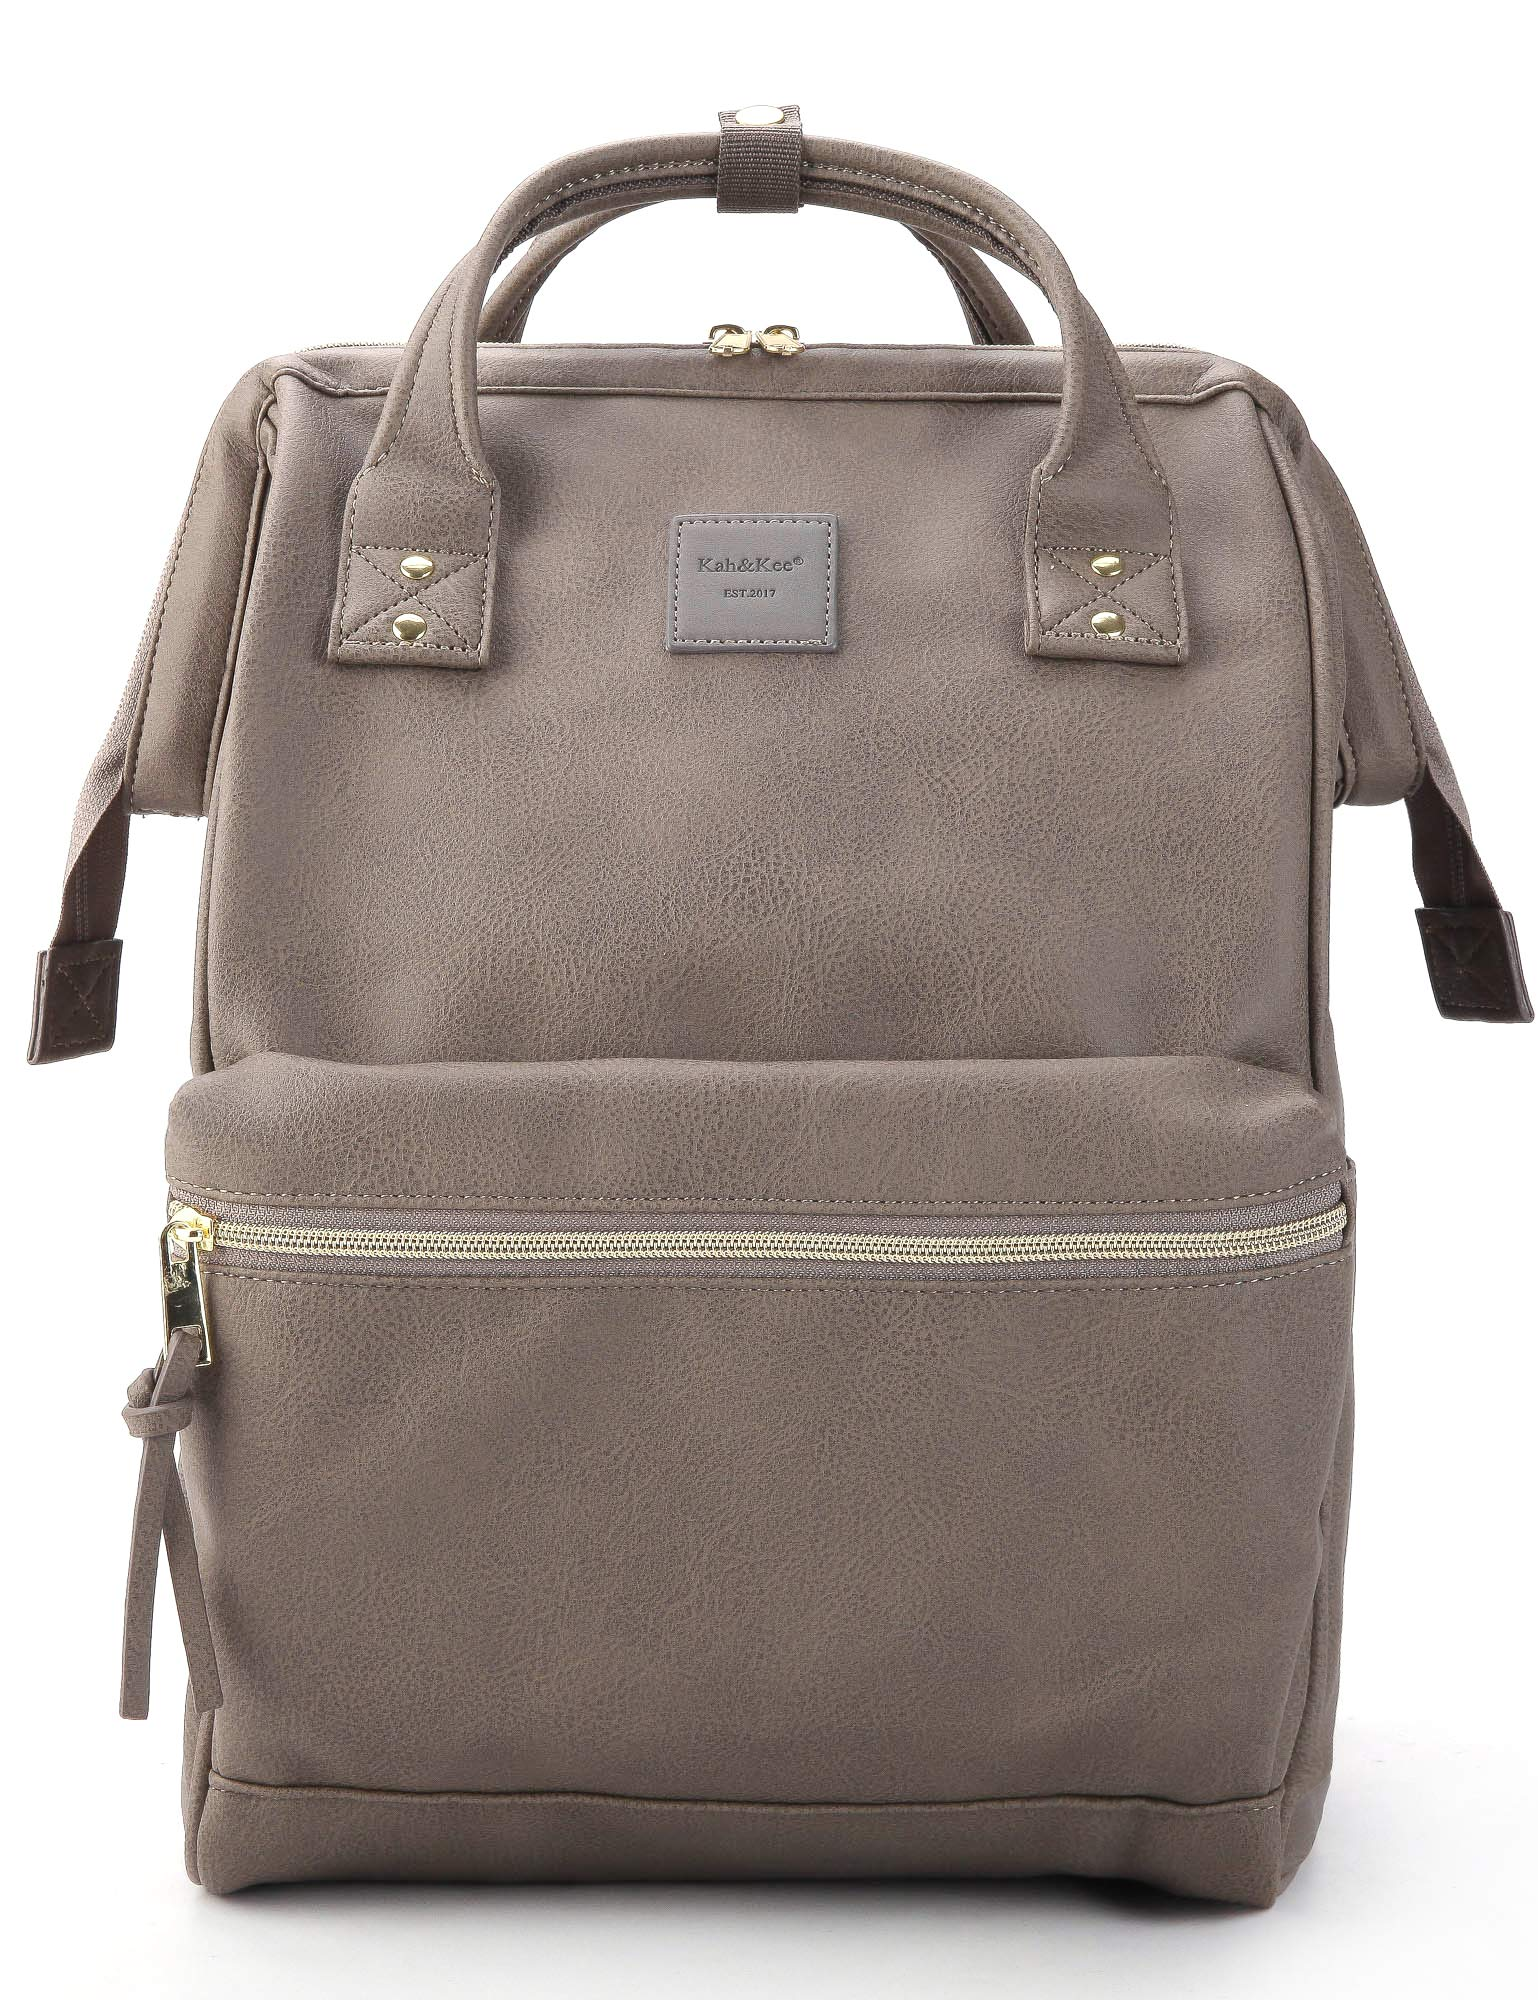 Kah&Kee Leather Backpack Diaper Bag with Laptop Compartment Travel School for Women Man (Gray, Large) by Kah&Kee